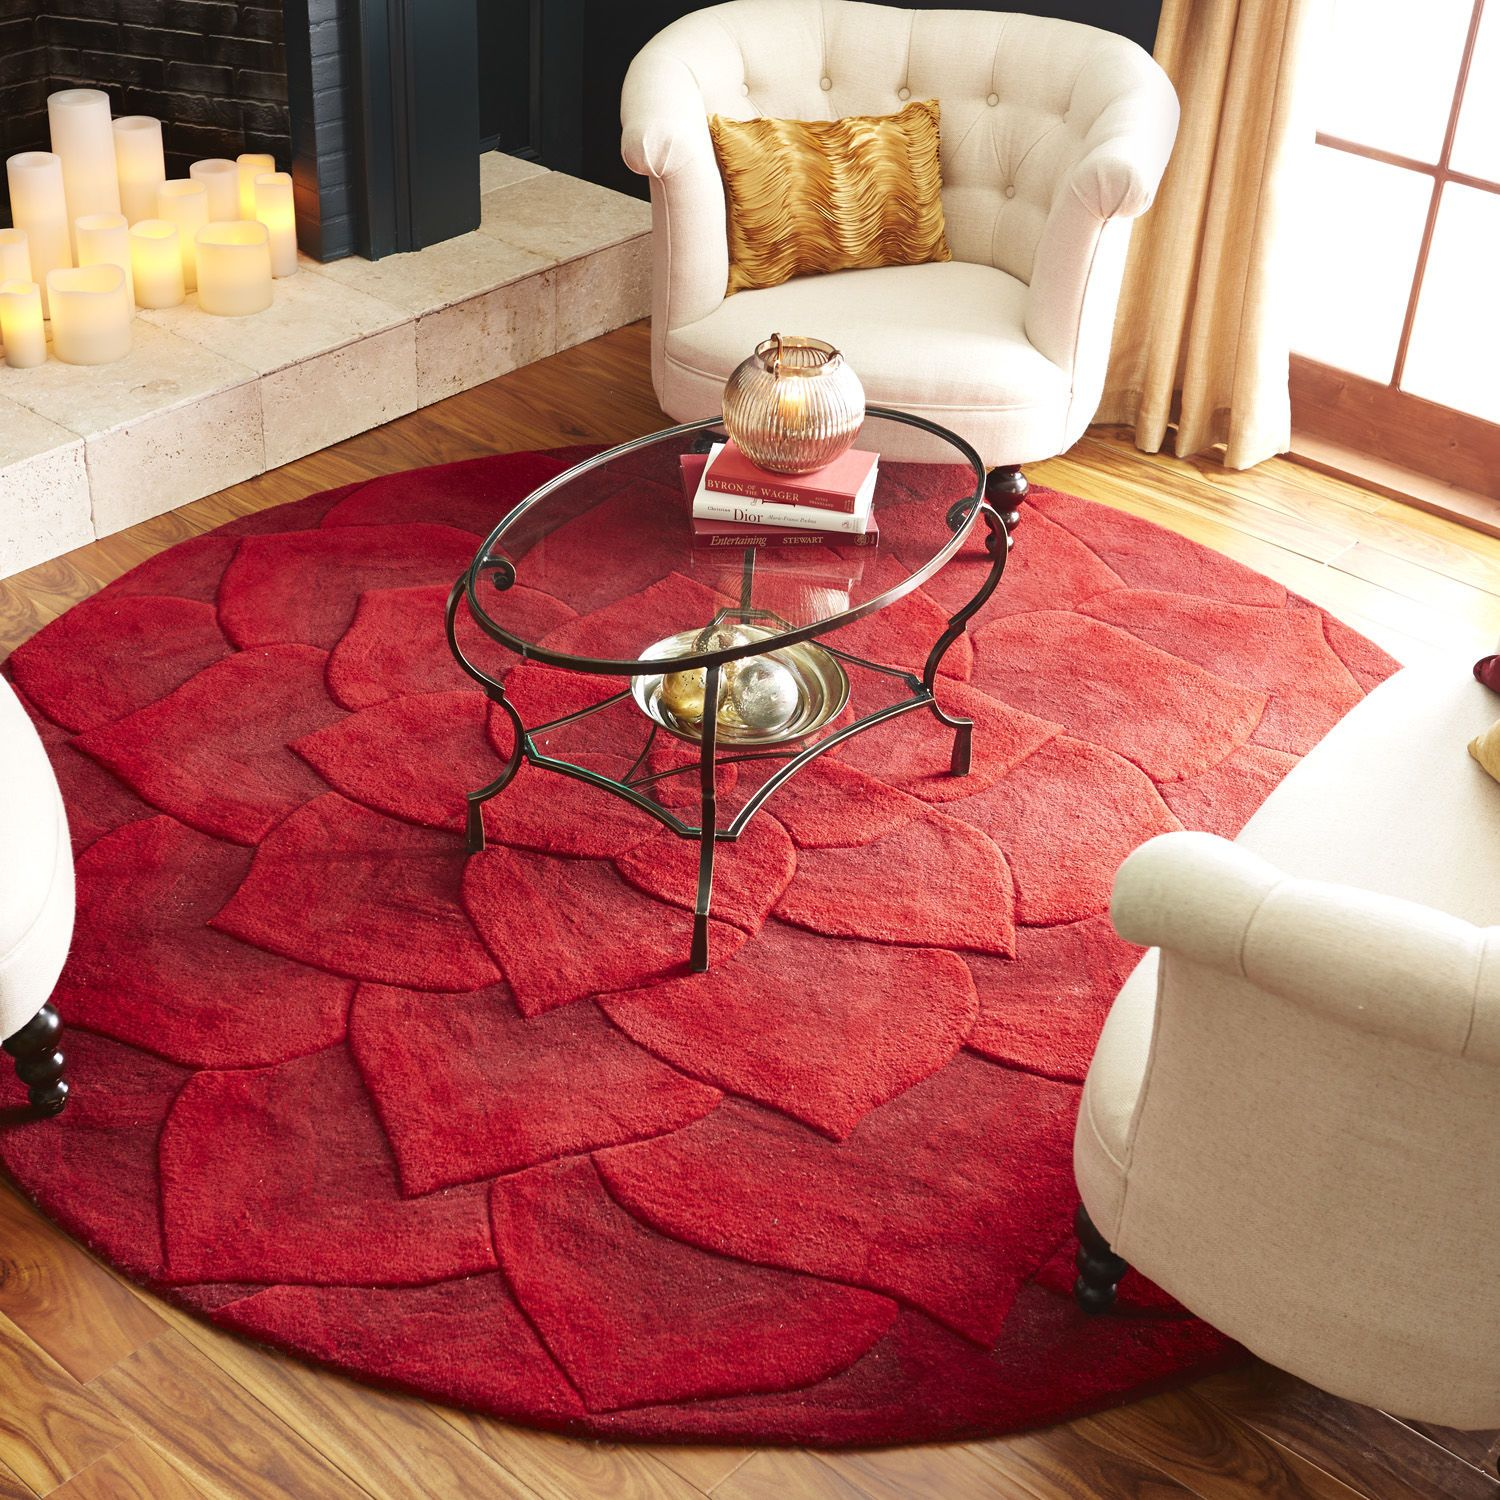 Rose Tufted Round Rug Red Pier 1